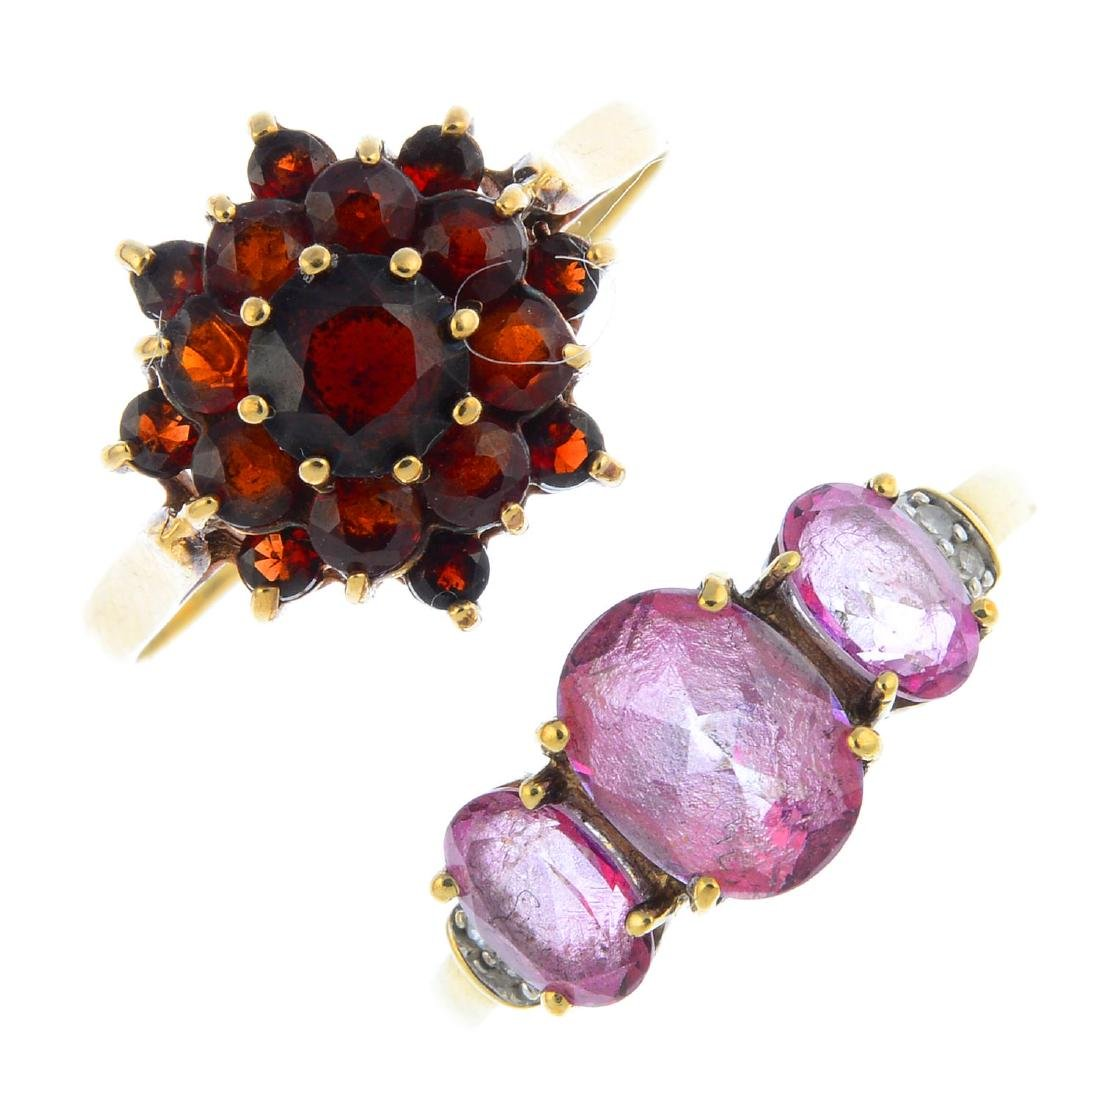 Four 9ct gold gem-set rings. To include a pink coated